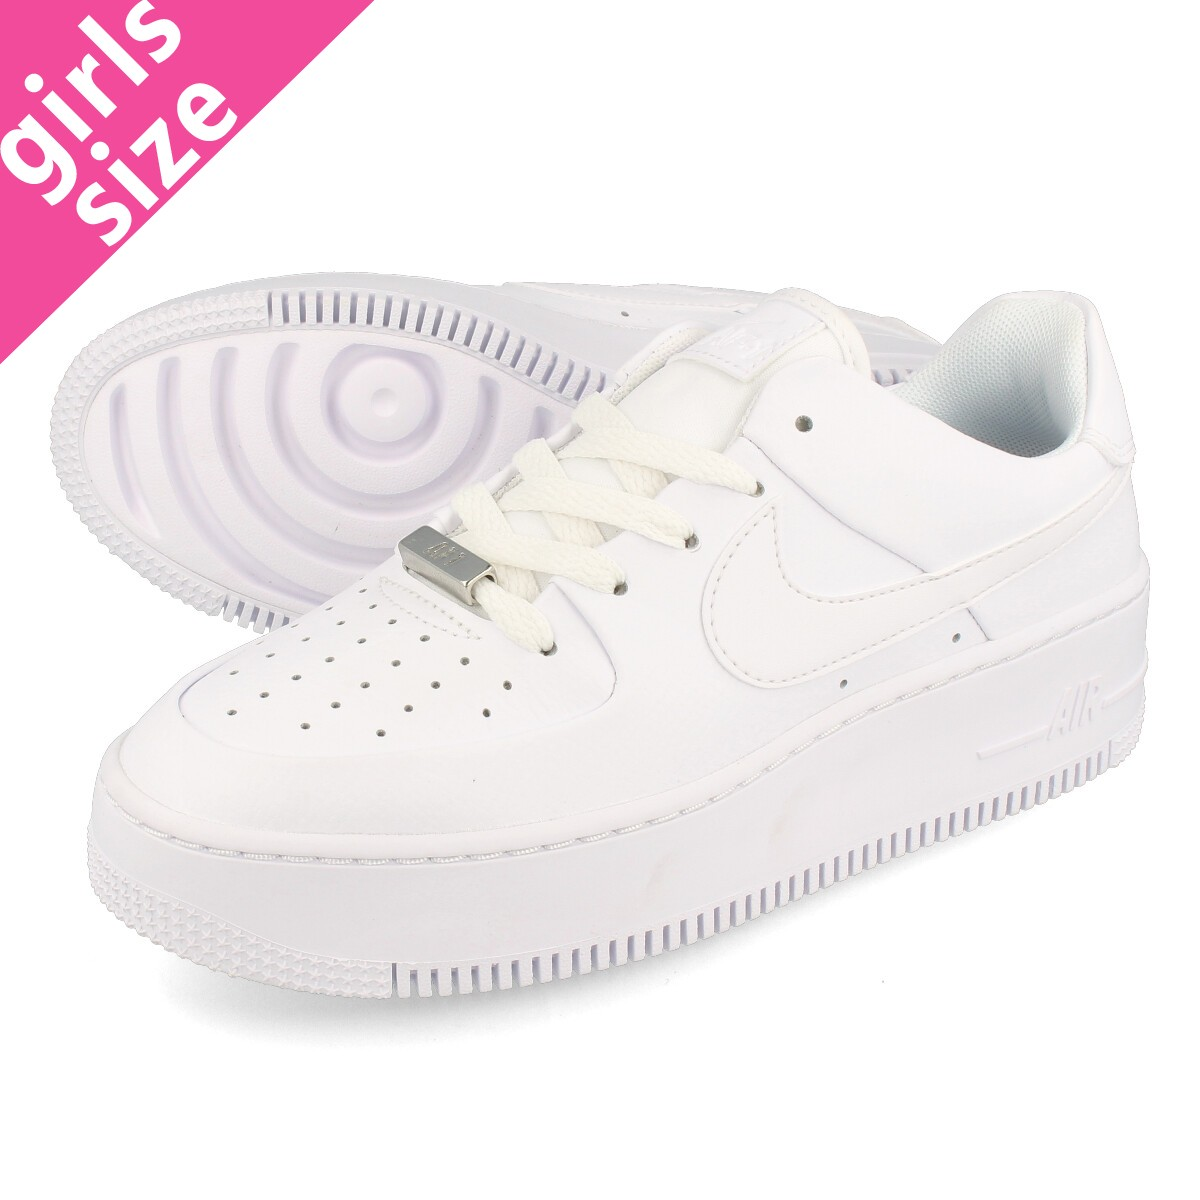 new products b77c1 0a66b NIKE WMNS AIR FORCE 1 SAGE LOW Nike women air force 1 sage low  WHITE WHITE WHITE ar5339-100